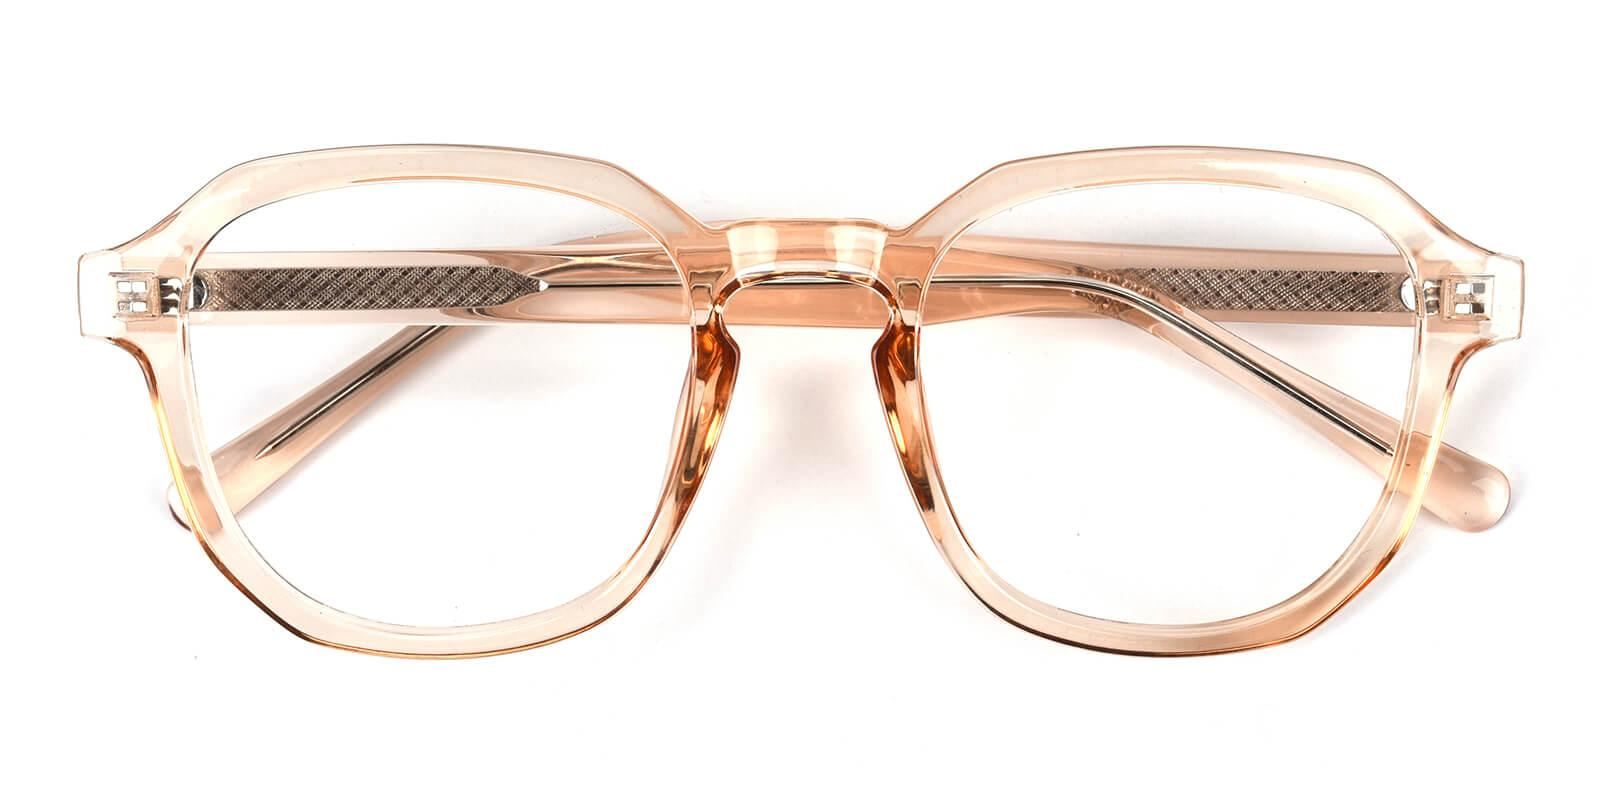 Emma-Orange-Square-Acetate-Eyeglasses-detail